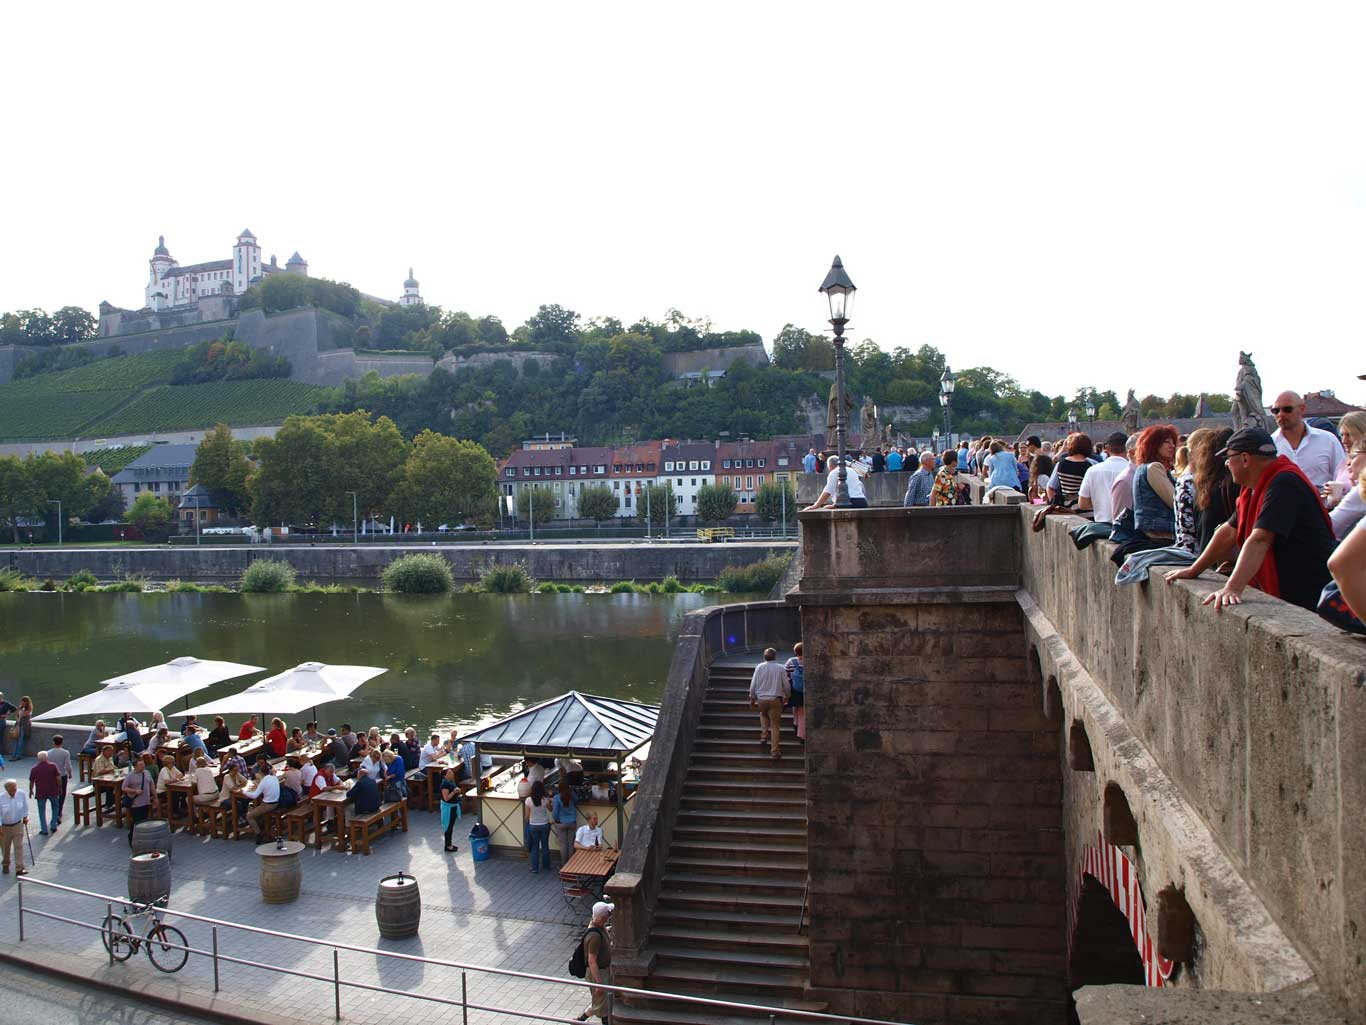 Enjoy a glass of wine and the amazing view from the bridge